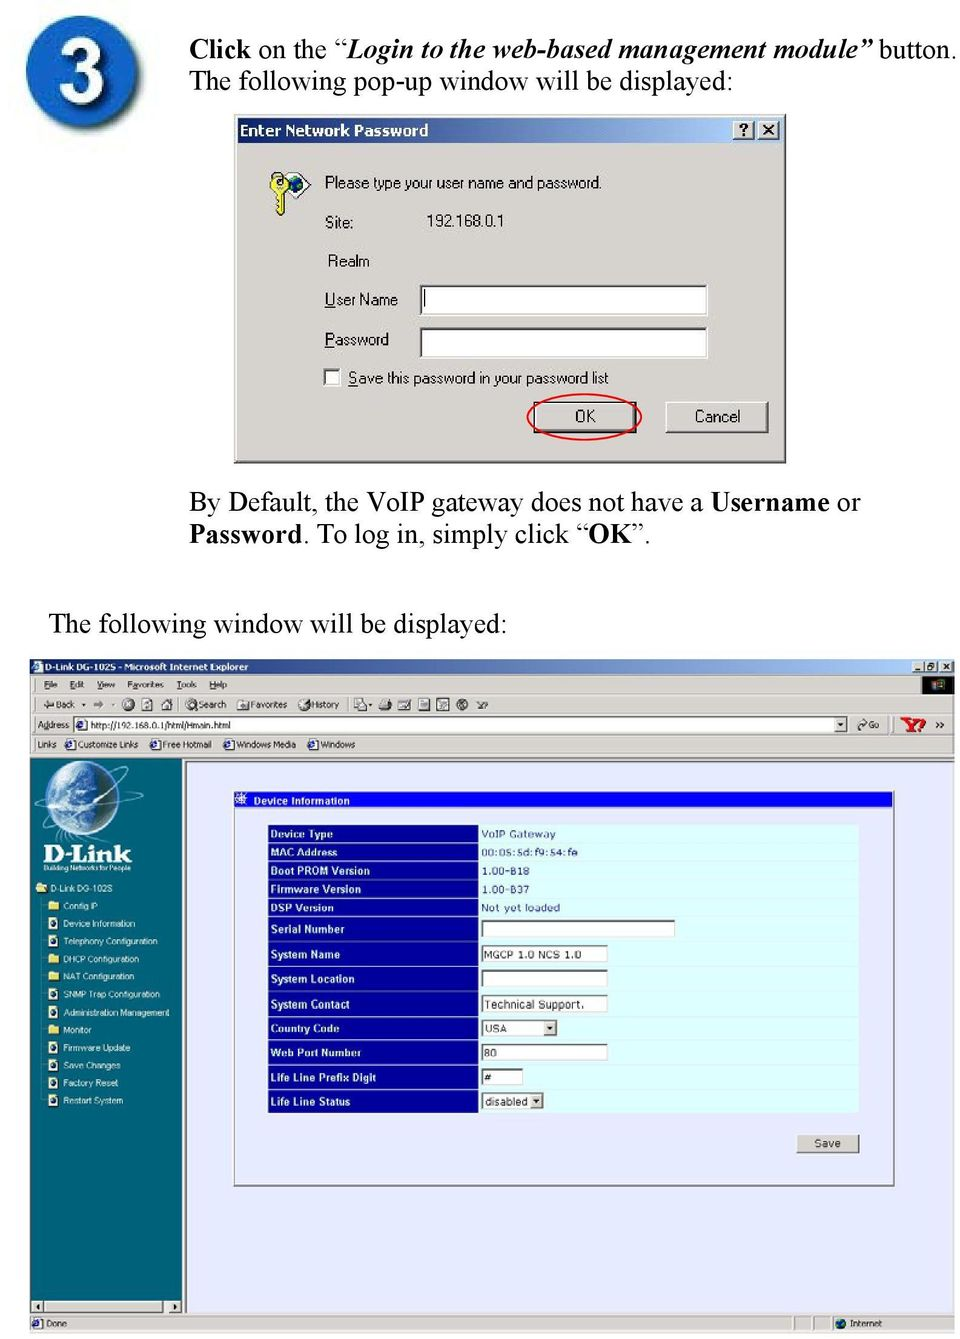 the VoIP gateway does not have a Username or Password.